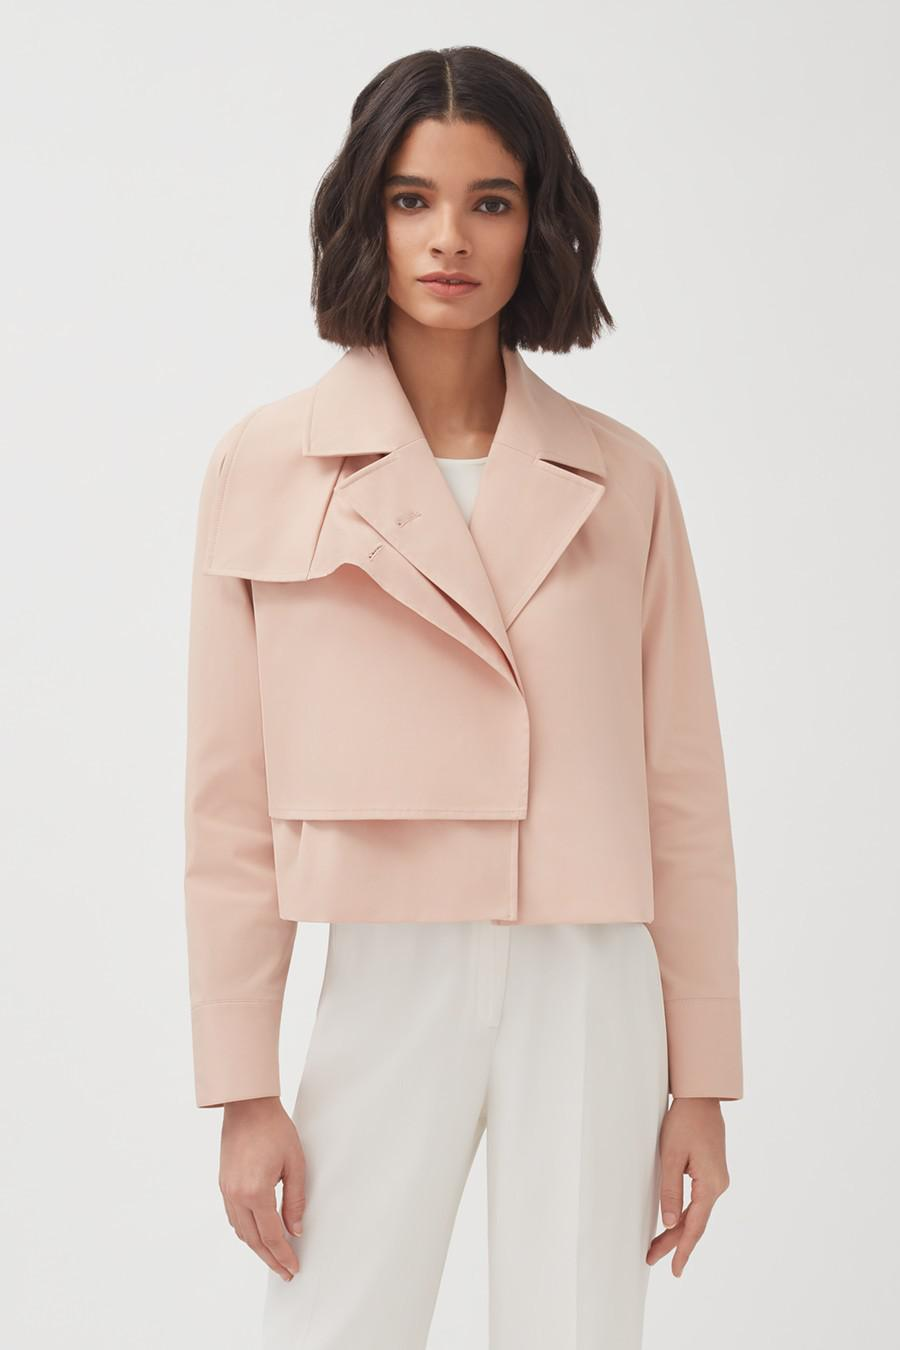 Women's Cropped Trench in Soft Rose | Size: S/M | Cotton Elastane Blend by Cuyana 1